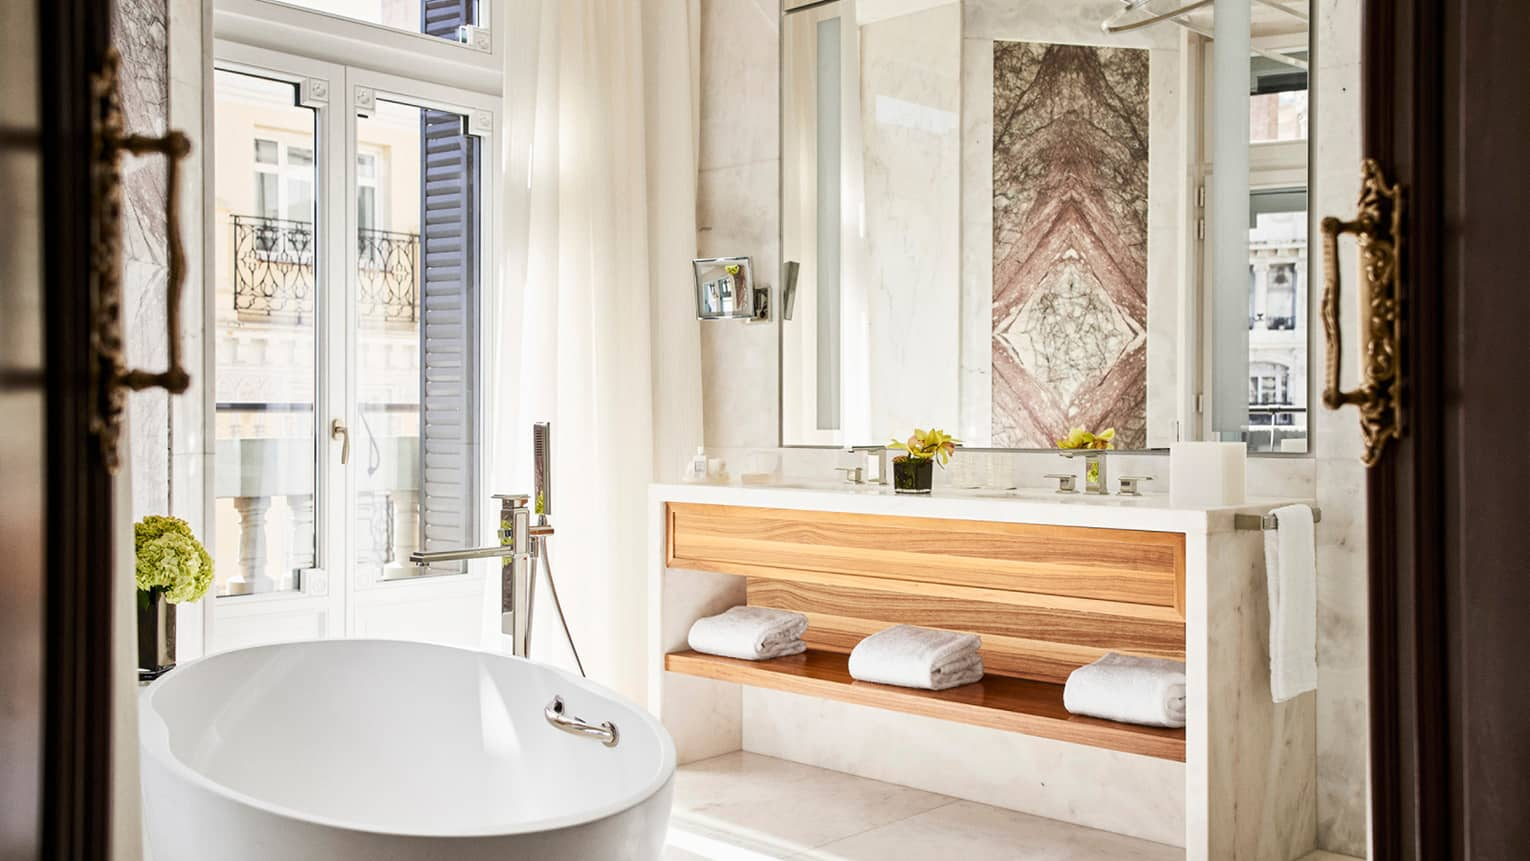 Bathroom with window, white free-standing tub, wooden vanity, large wall mirror